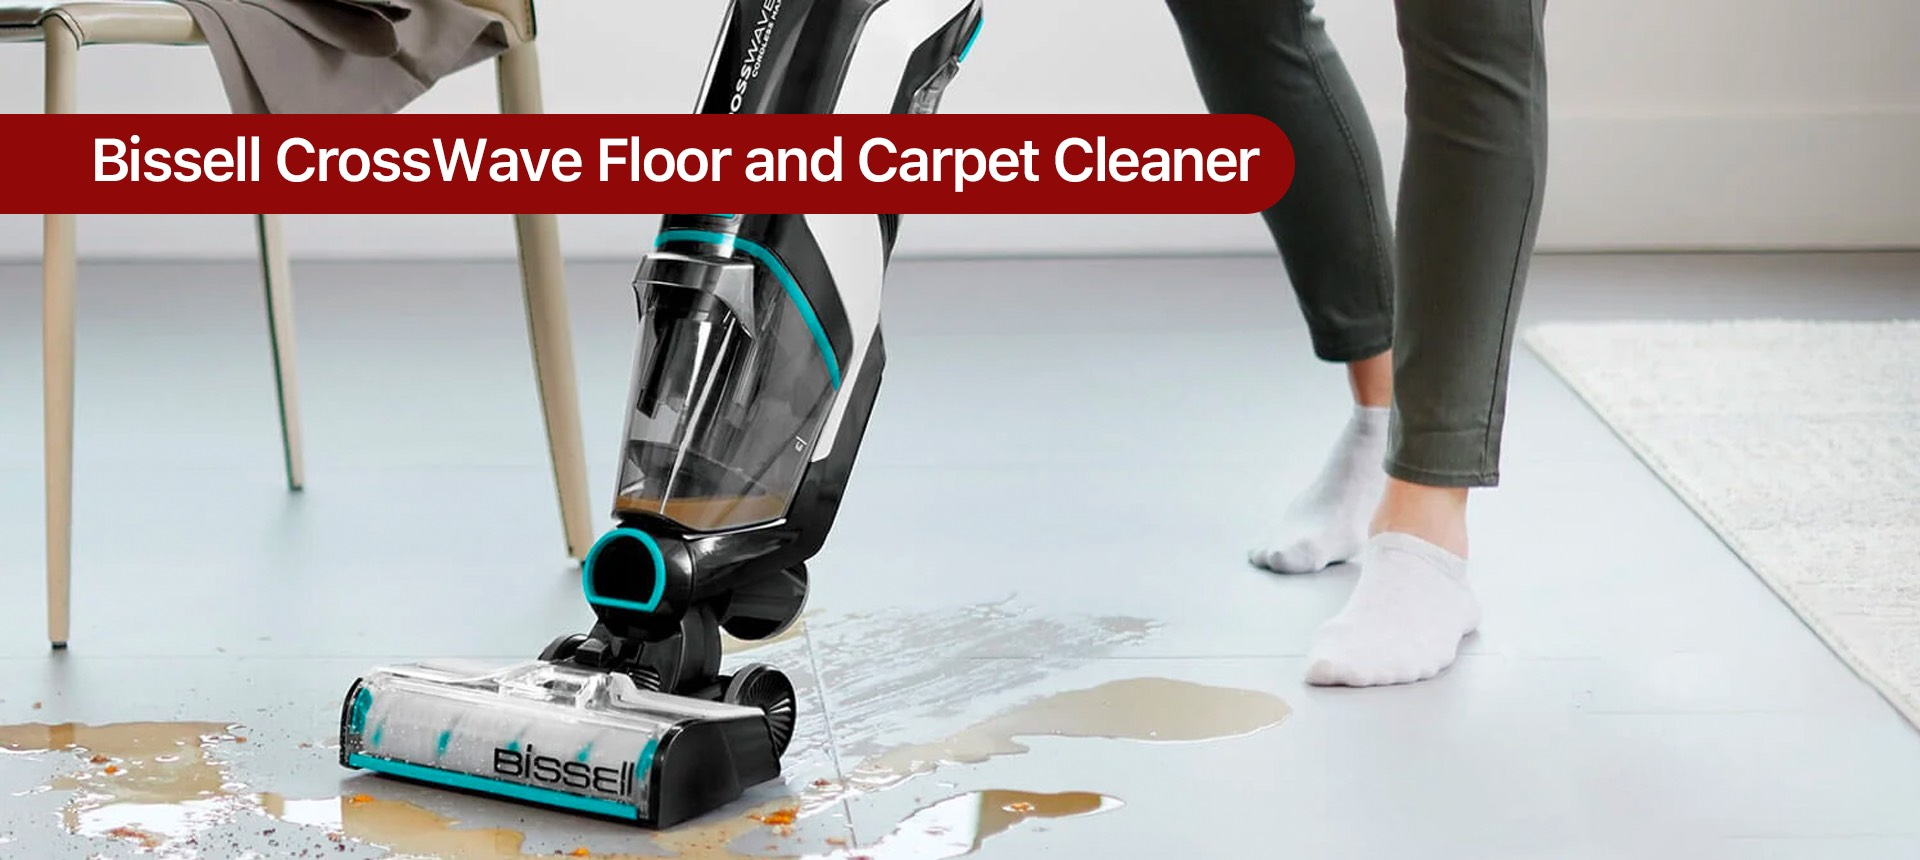 Floor and Carpet Cleaner